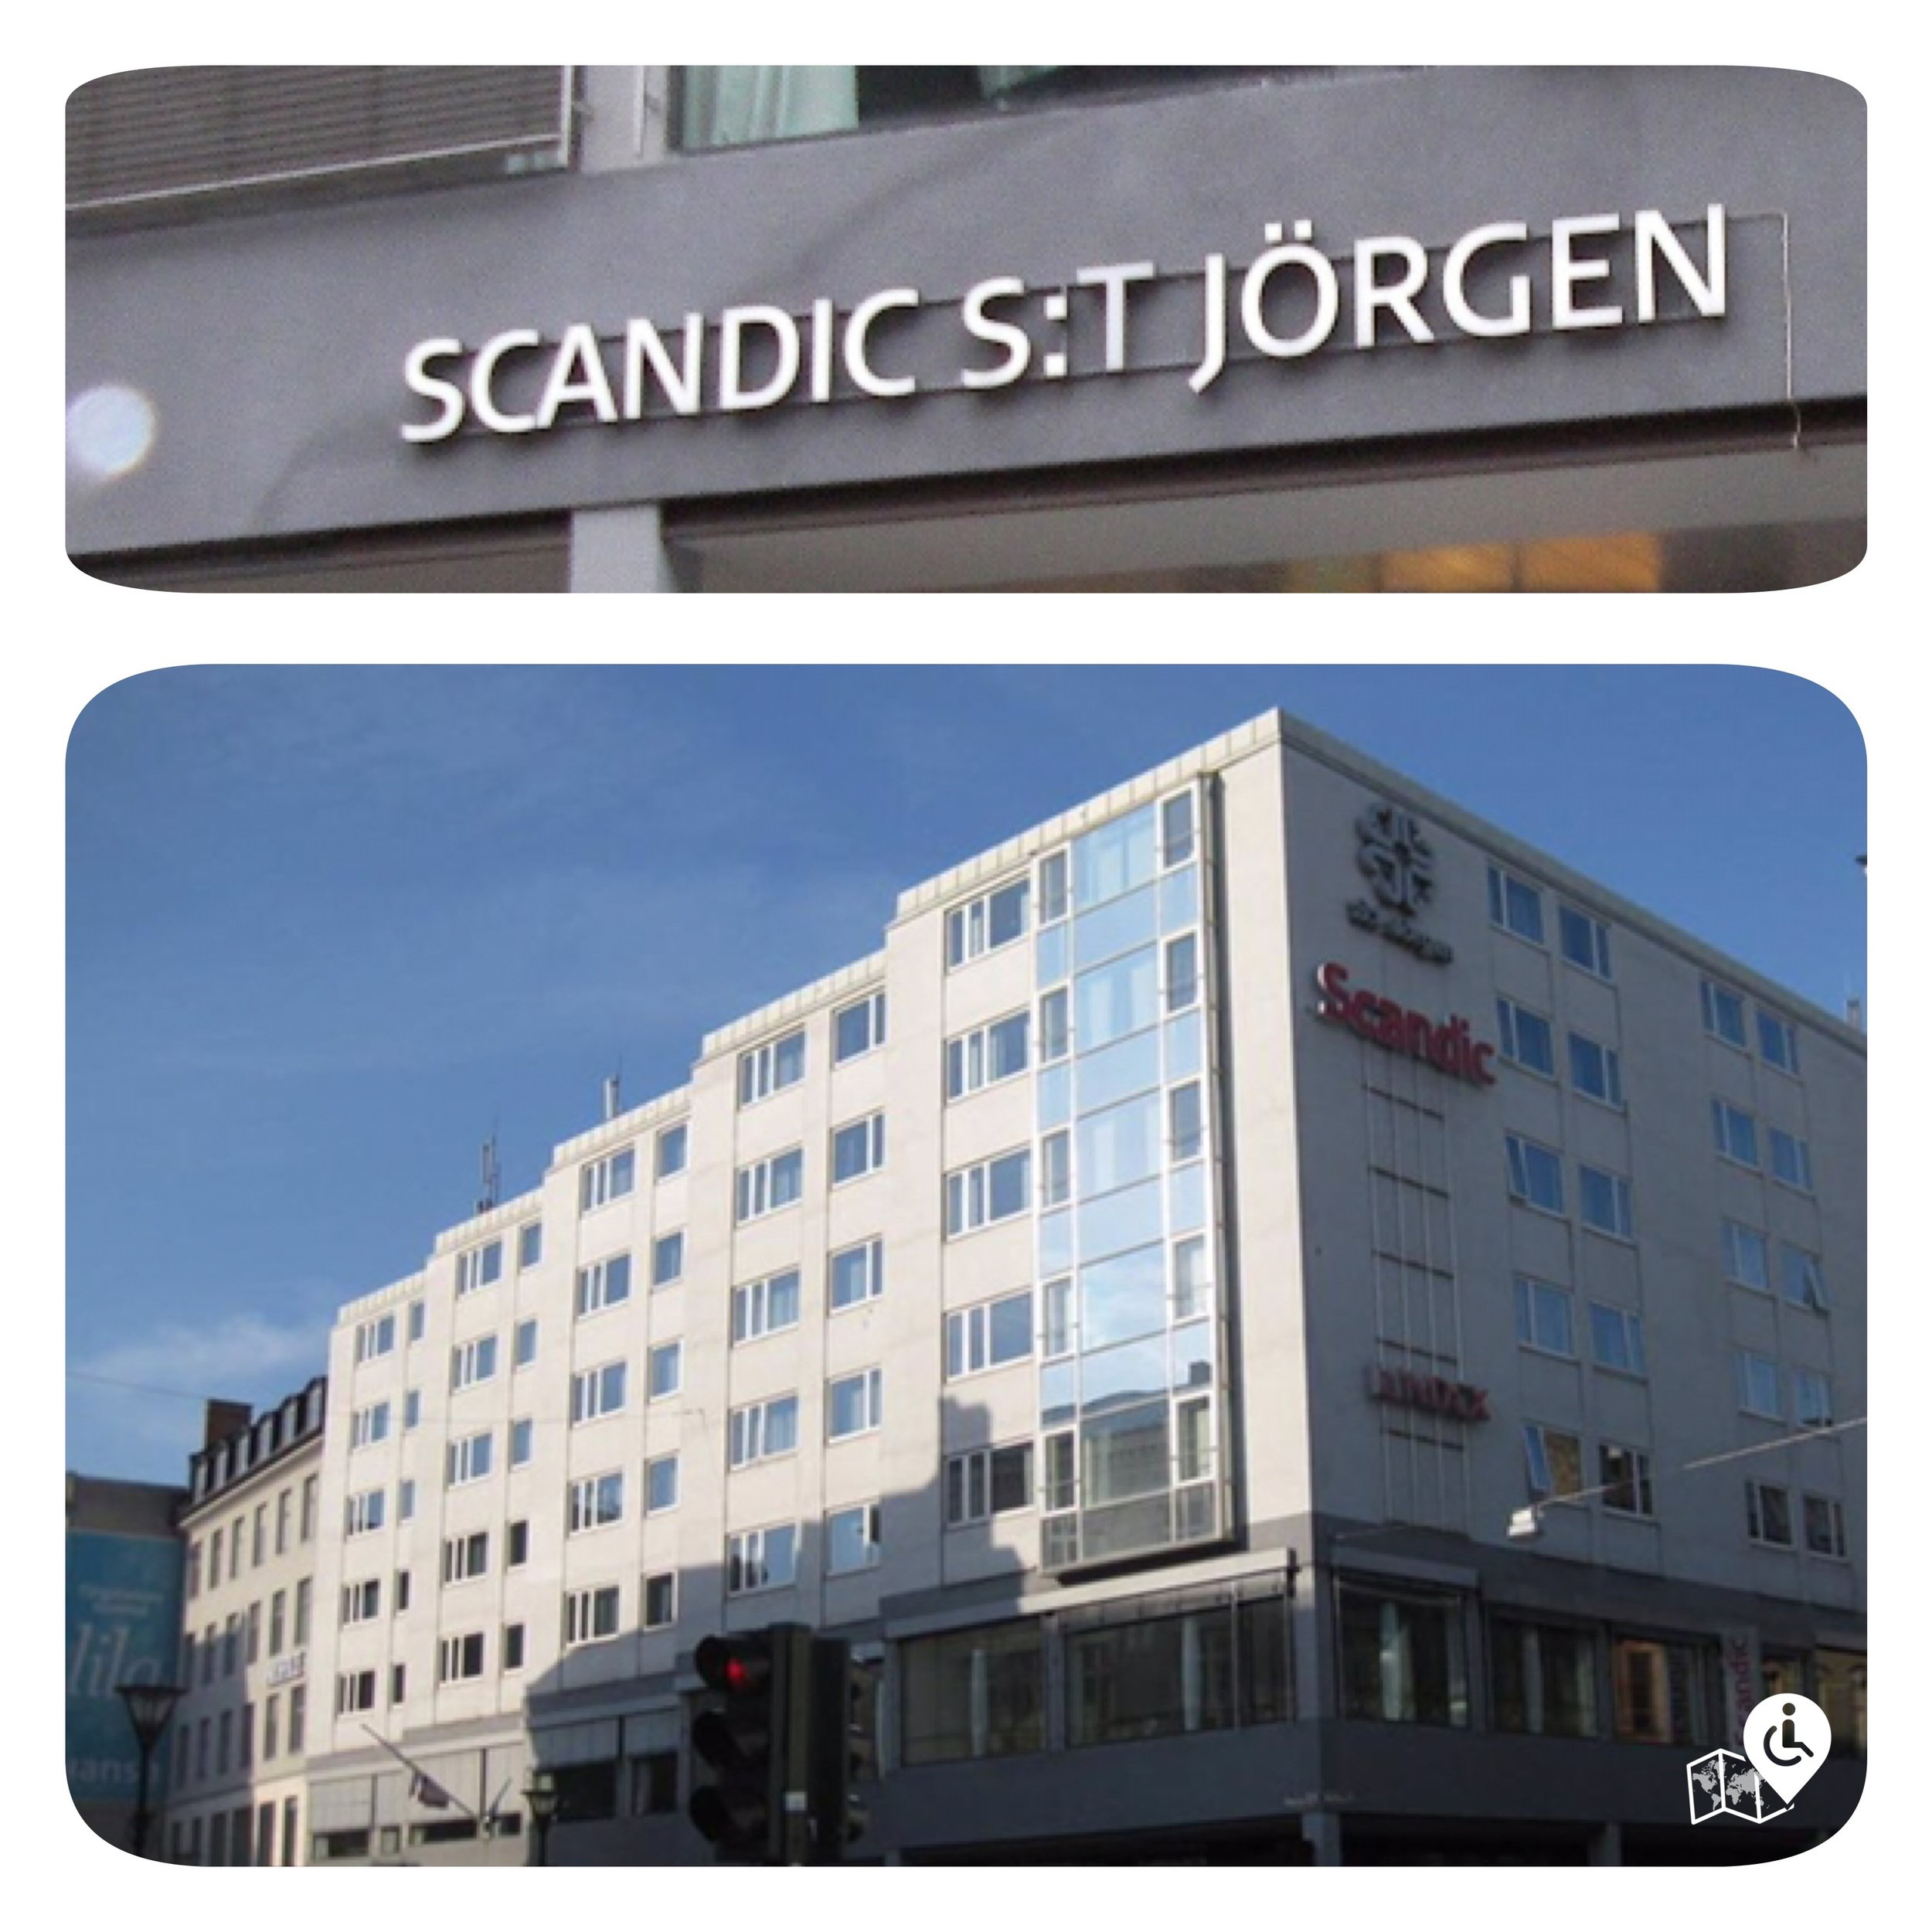 Malmö Scandic St Jörgen is very centrally located, within rolling distance to many shops, parks and restaurants nearby.